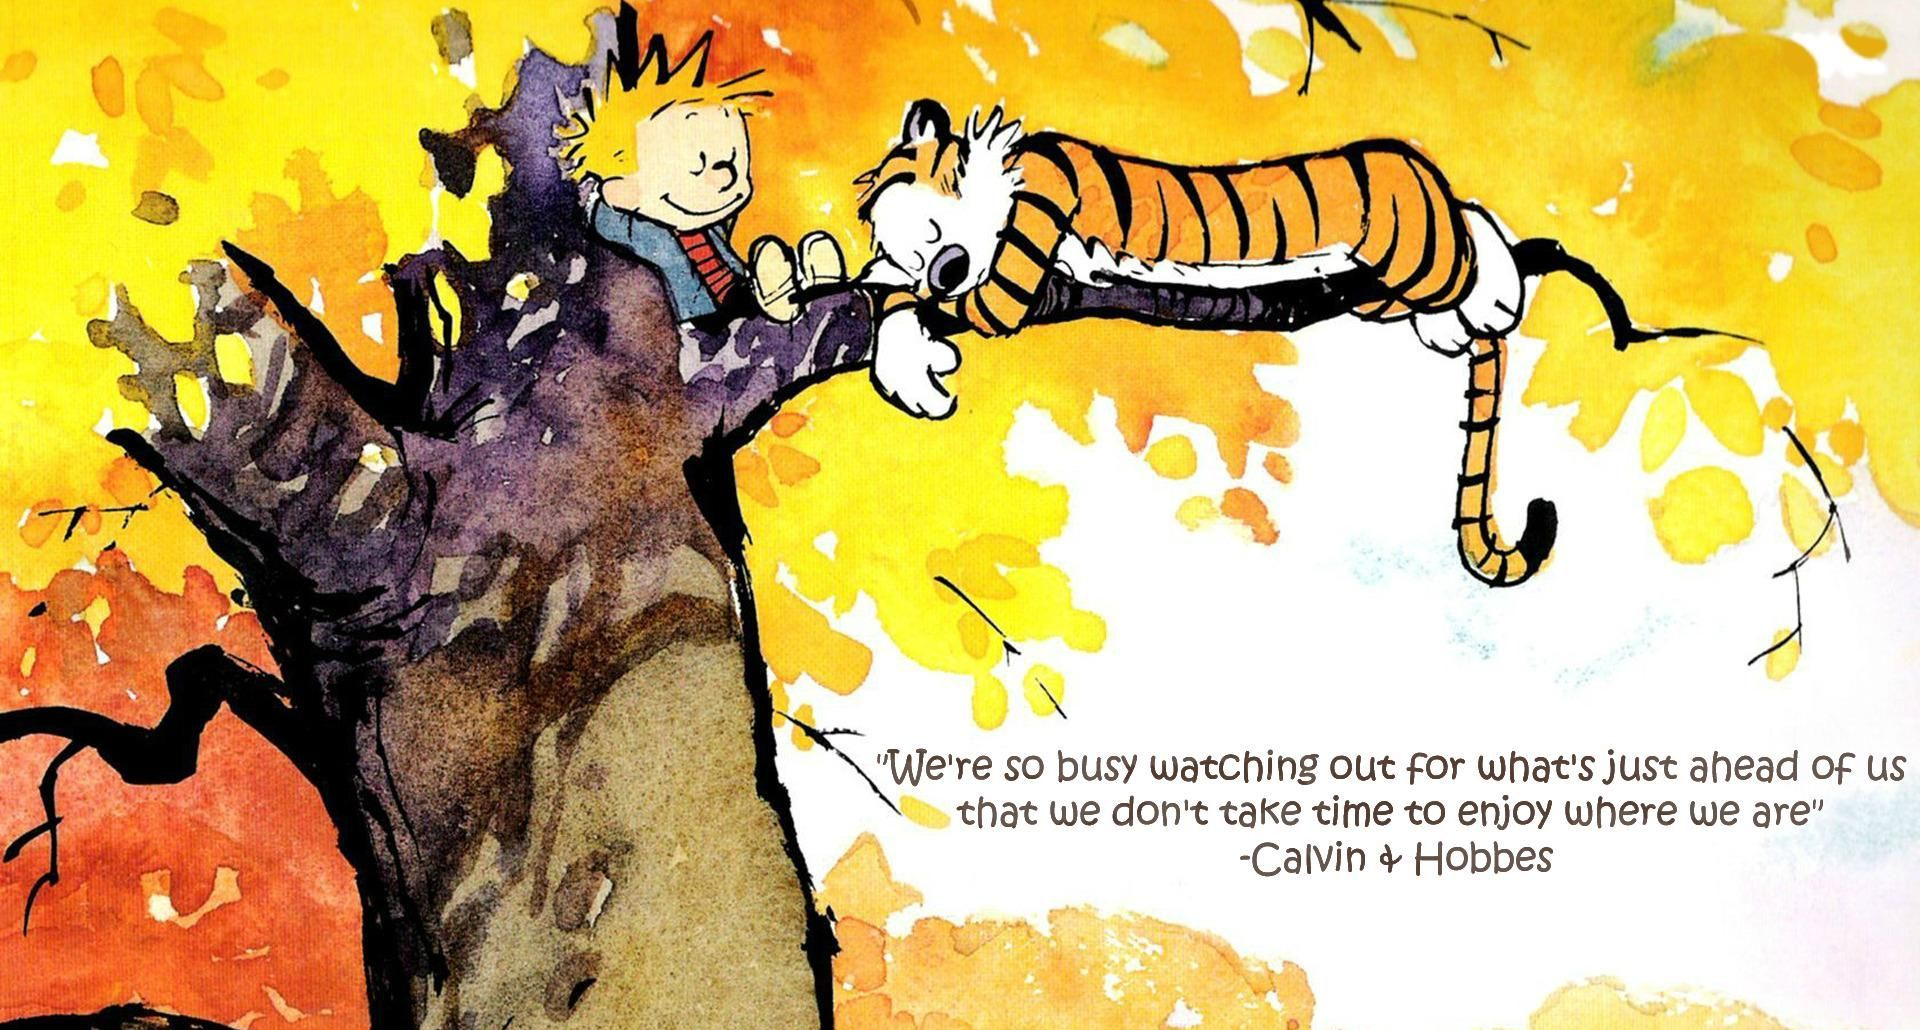 1920-x-1080-px-widescreen-calvin-and-hobbes-by-Leighton-Nash-Williams-for-TrunkWeed-wallpaper-wpc900579